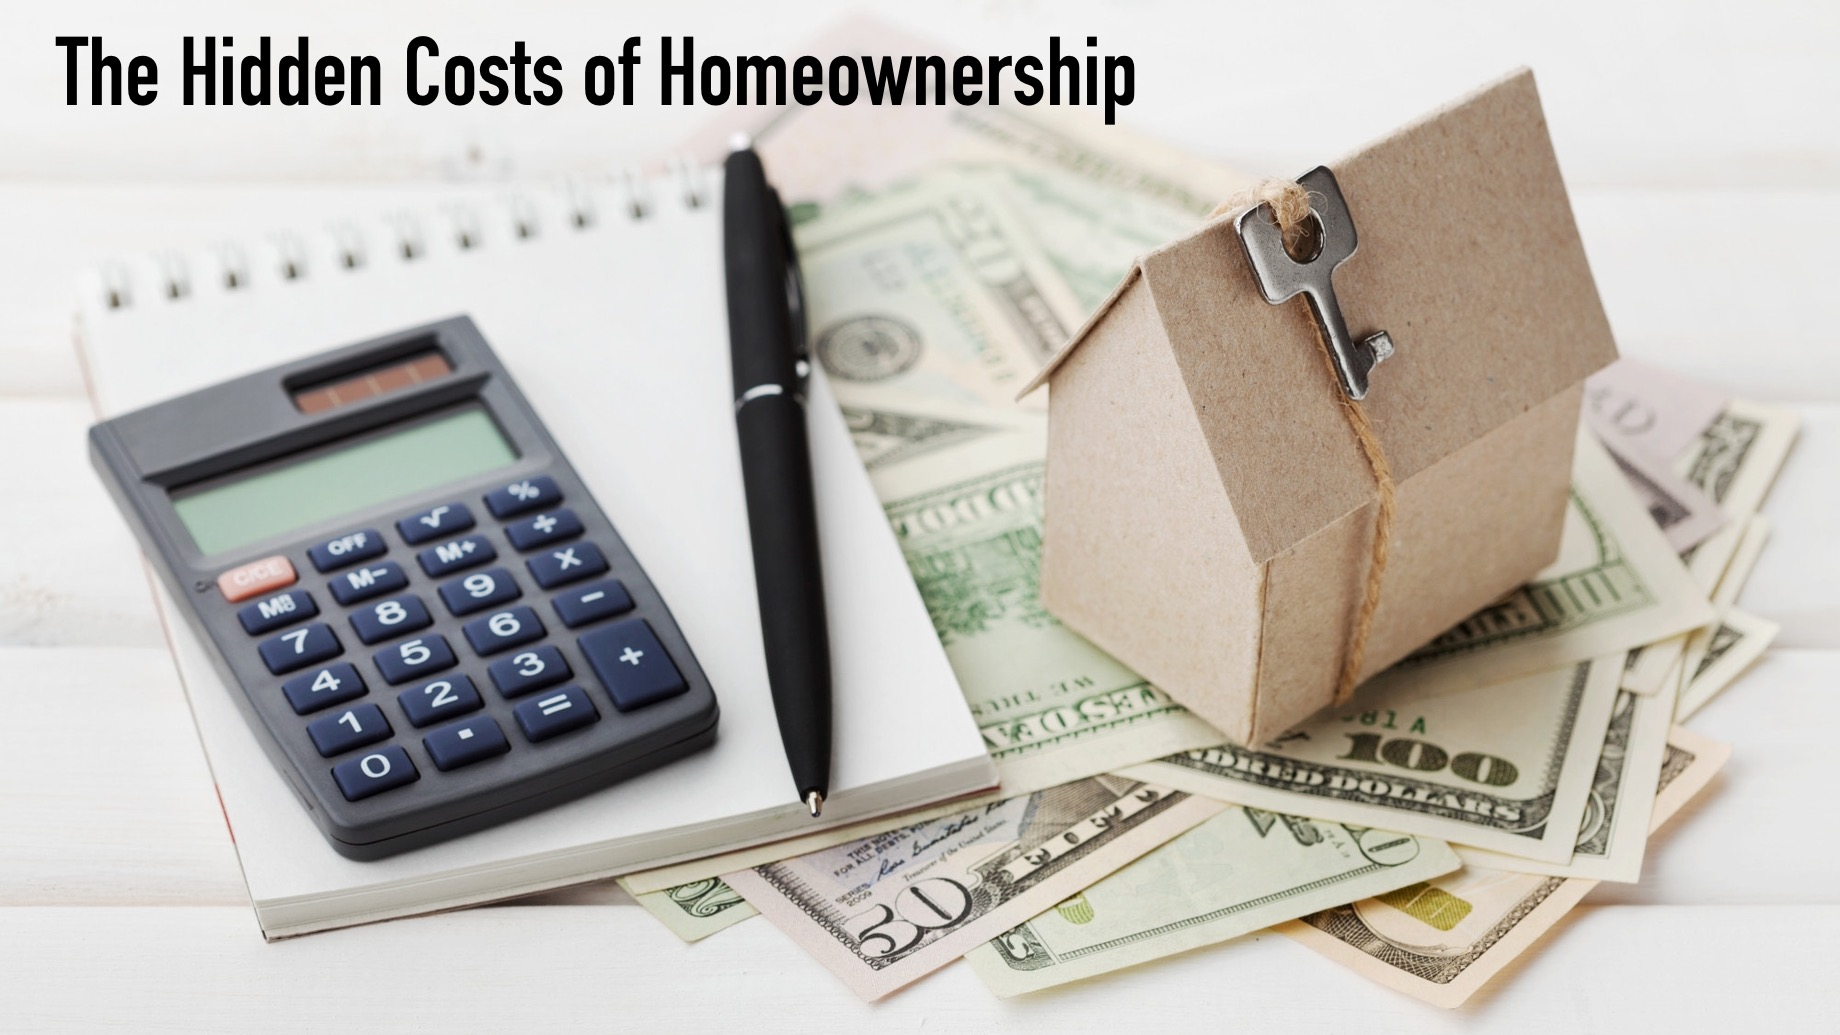 The Hidden Costs of Homeownership